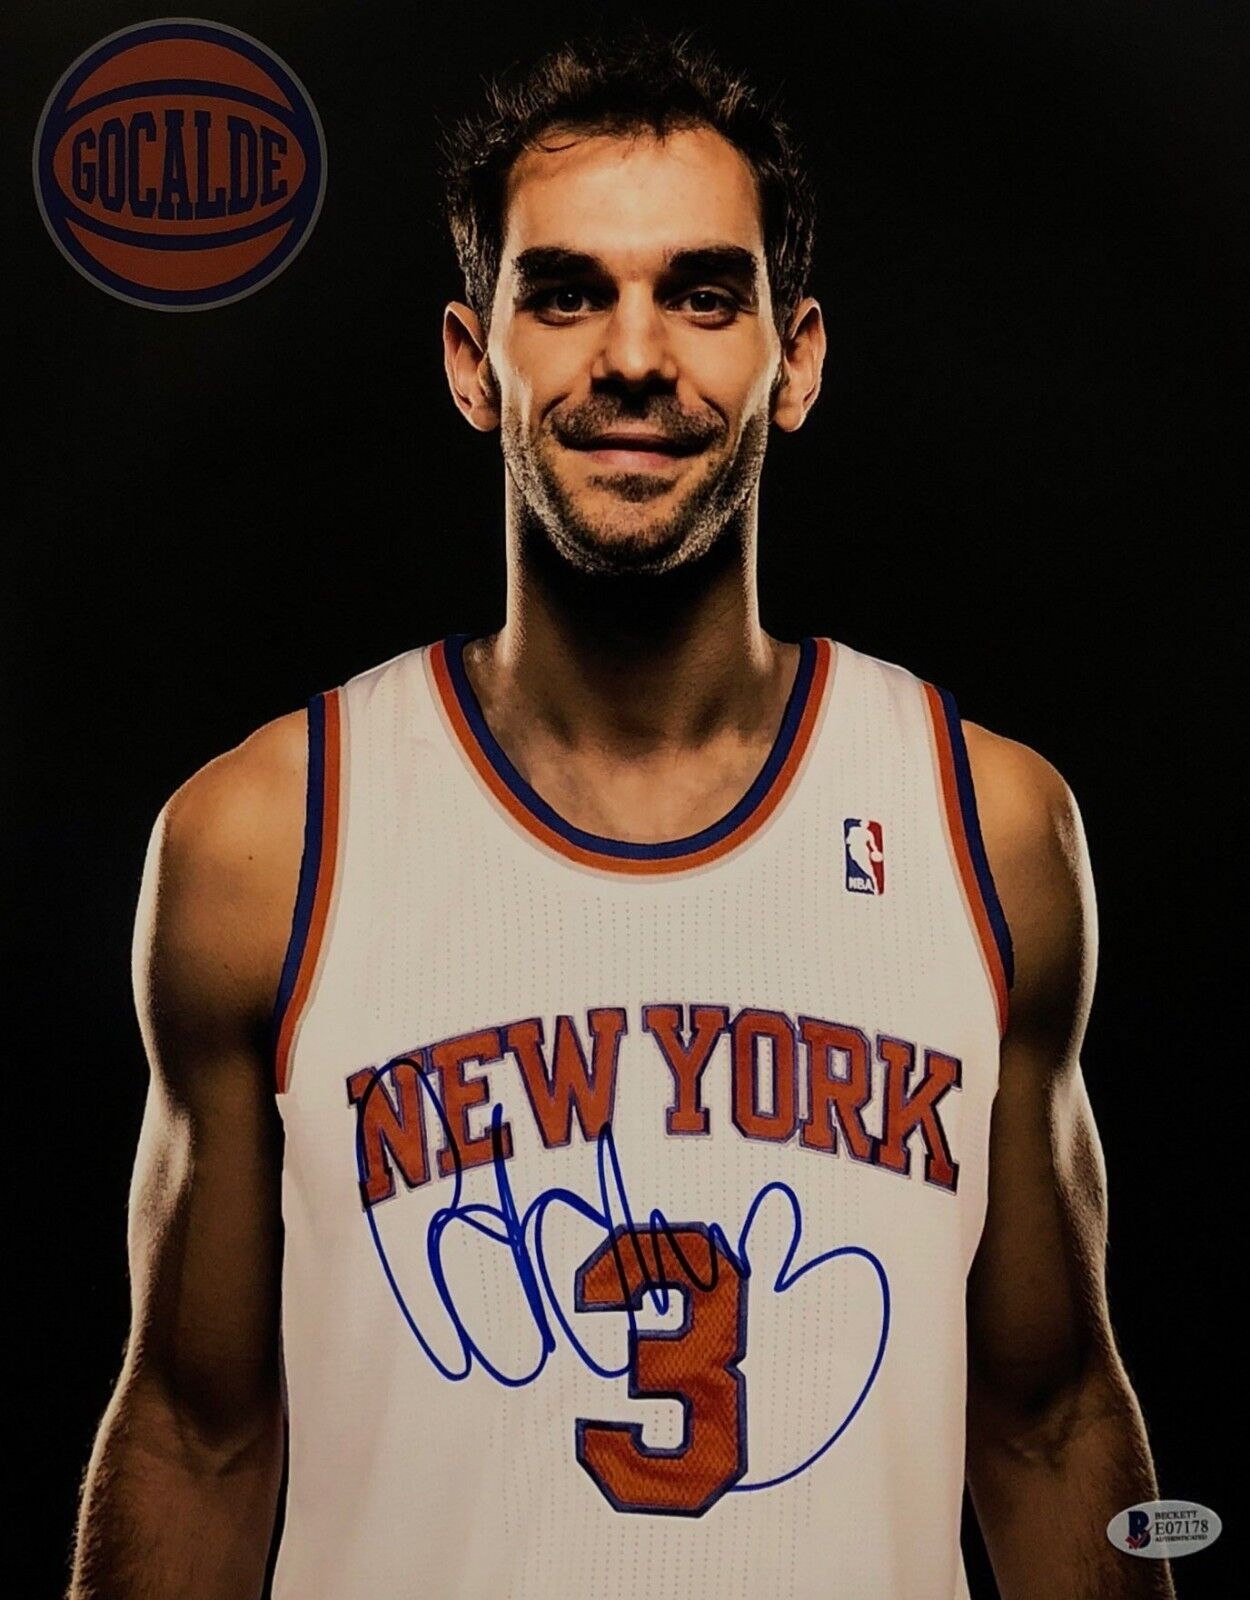 Jose Calderon Signed New York Knicks 11x14 Basketball Photo Beckett BAS E07178